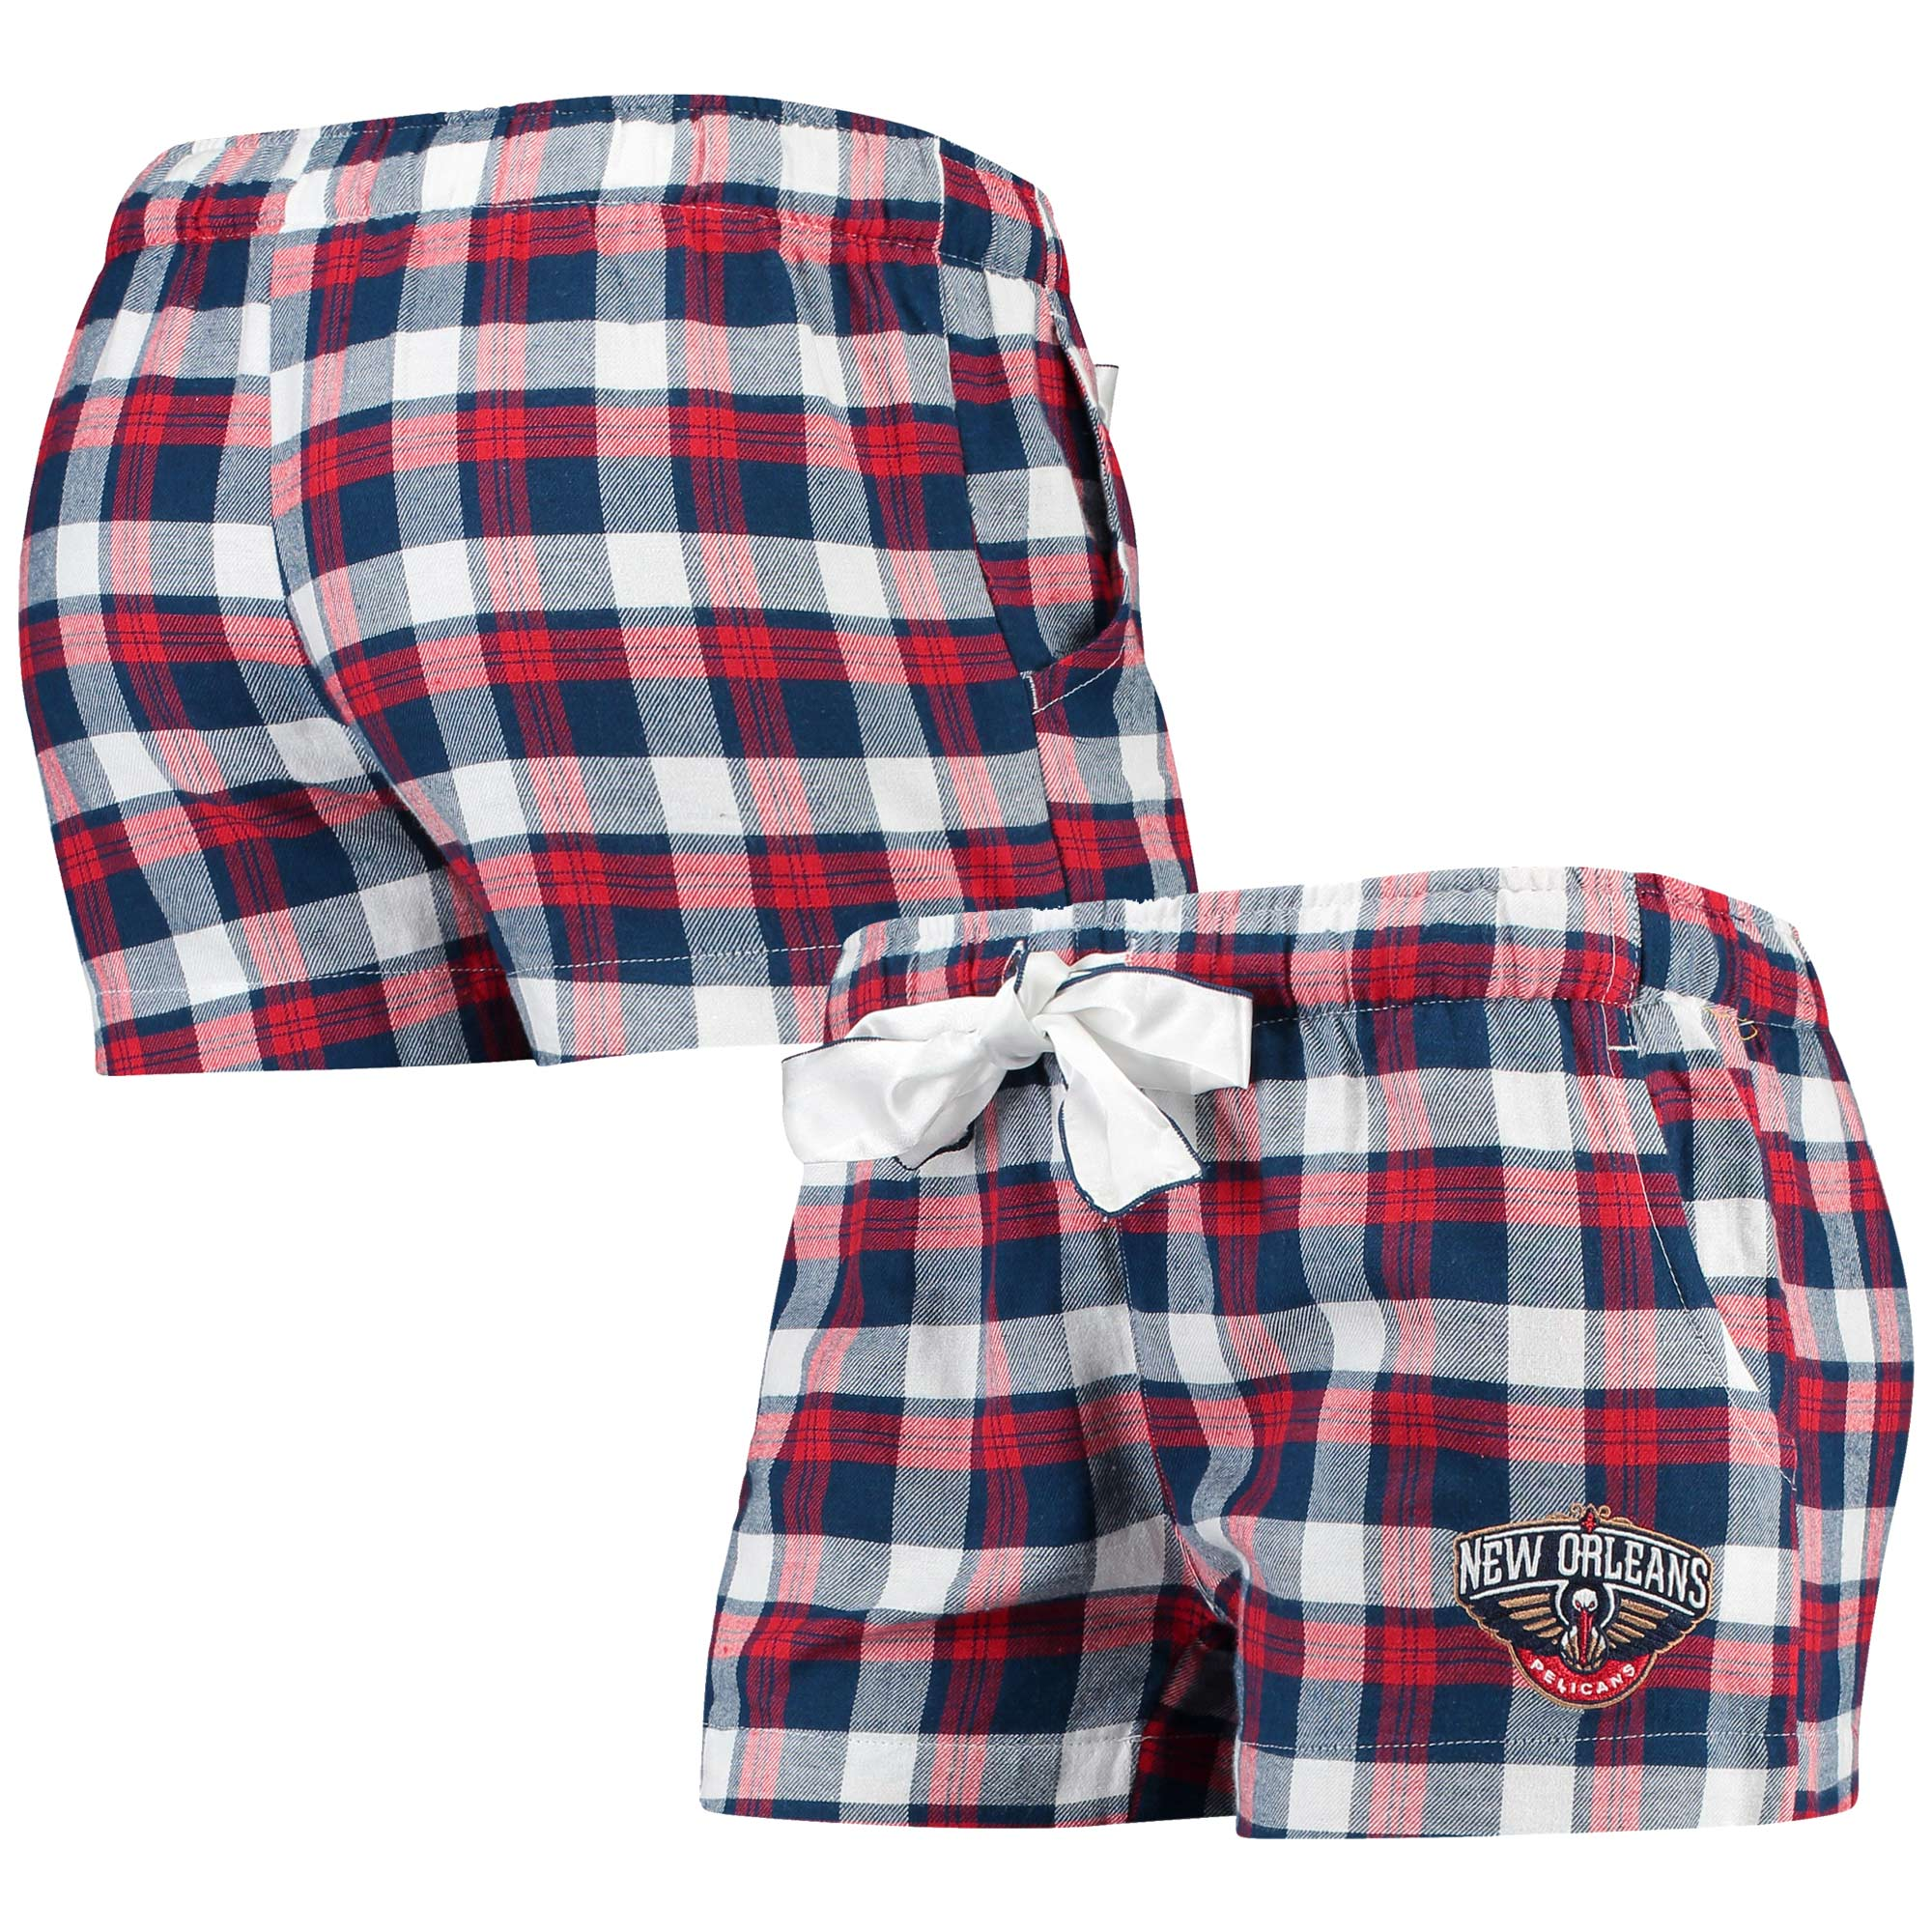 New Orleans Pelicans Concepts Sport Women's Piedmont Flannel Sleep Shorts - Navy/Red